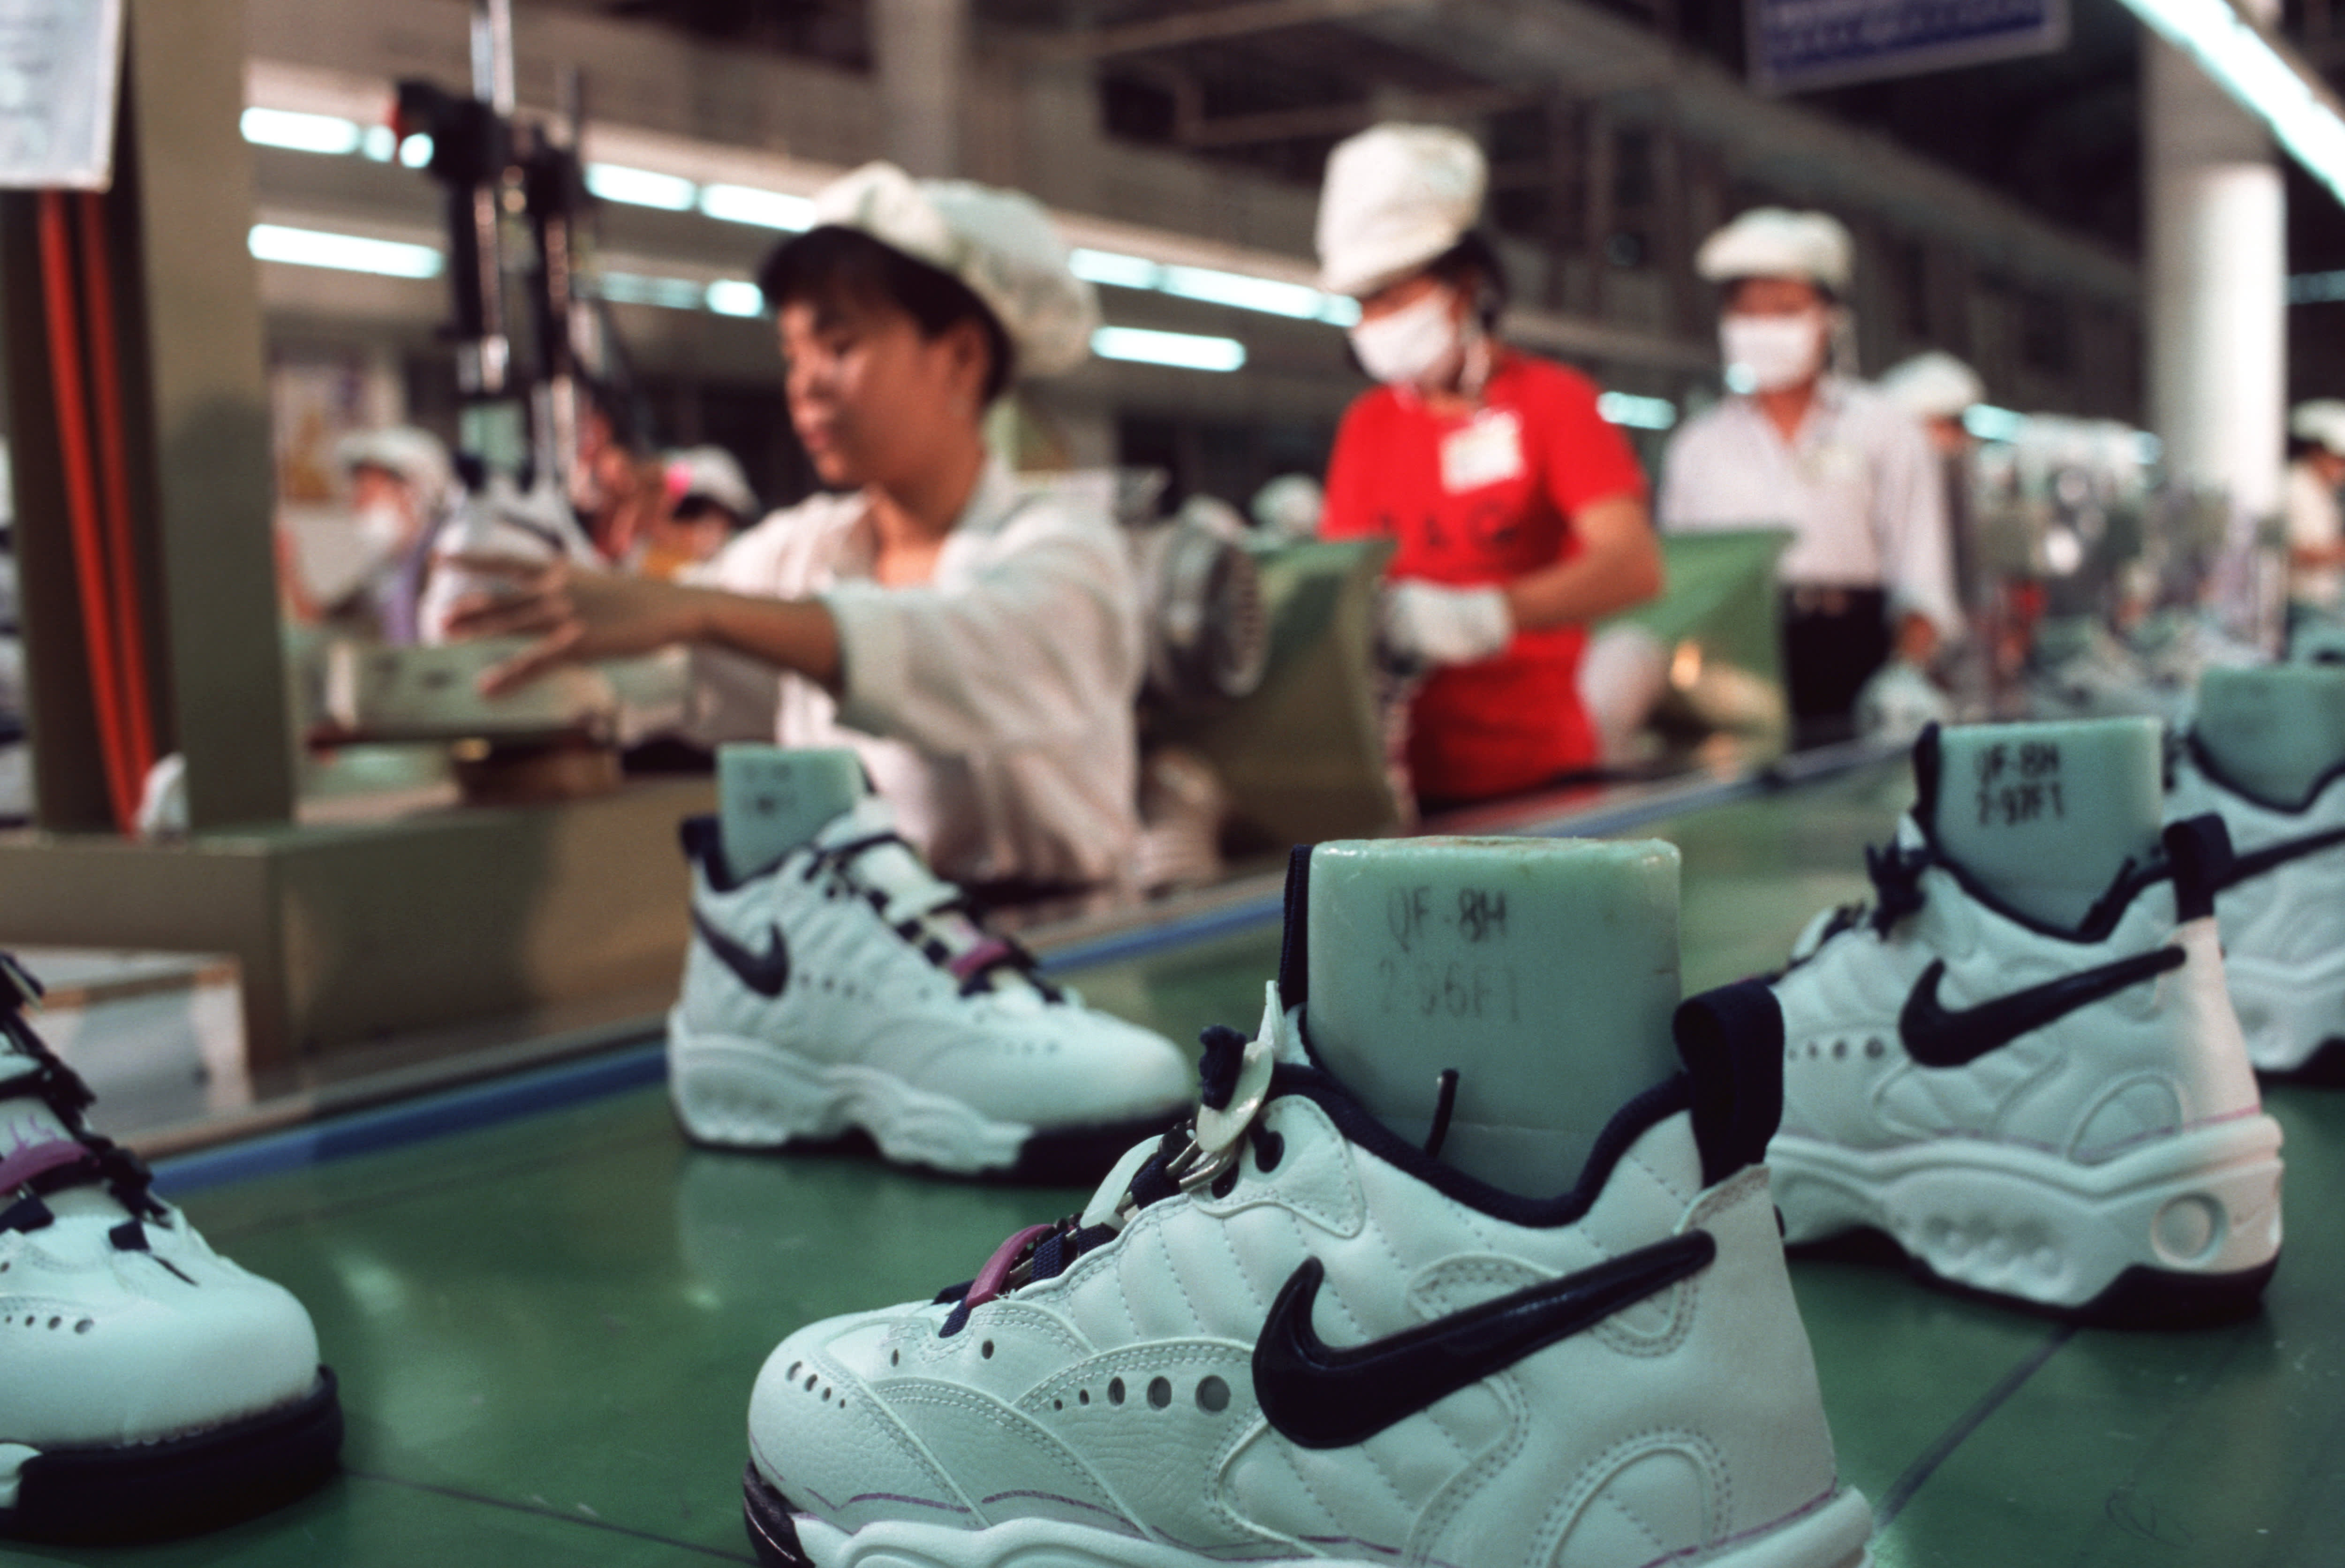 Nike could run out of sneakers made in Vietnam as Covid crisis worsens, S&P Global warns